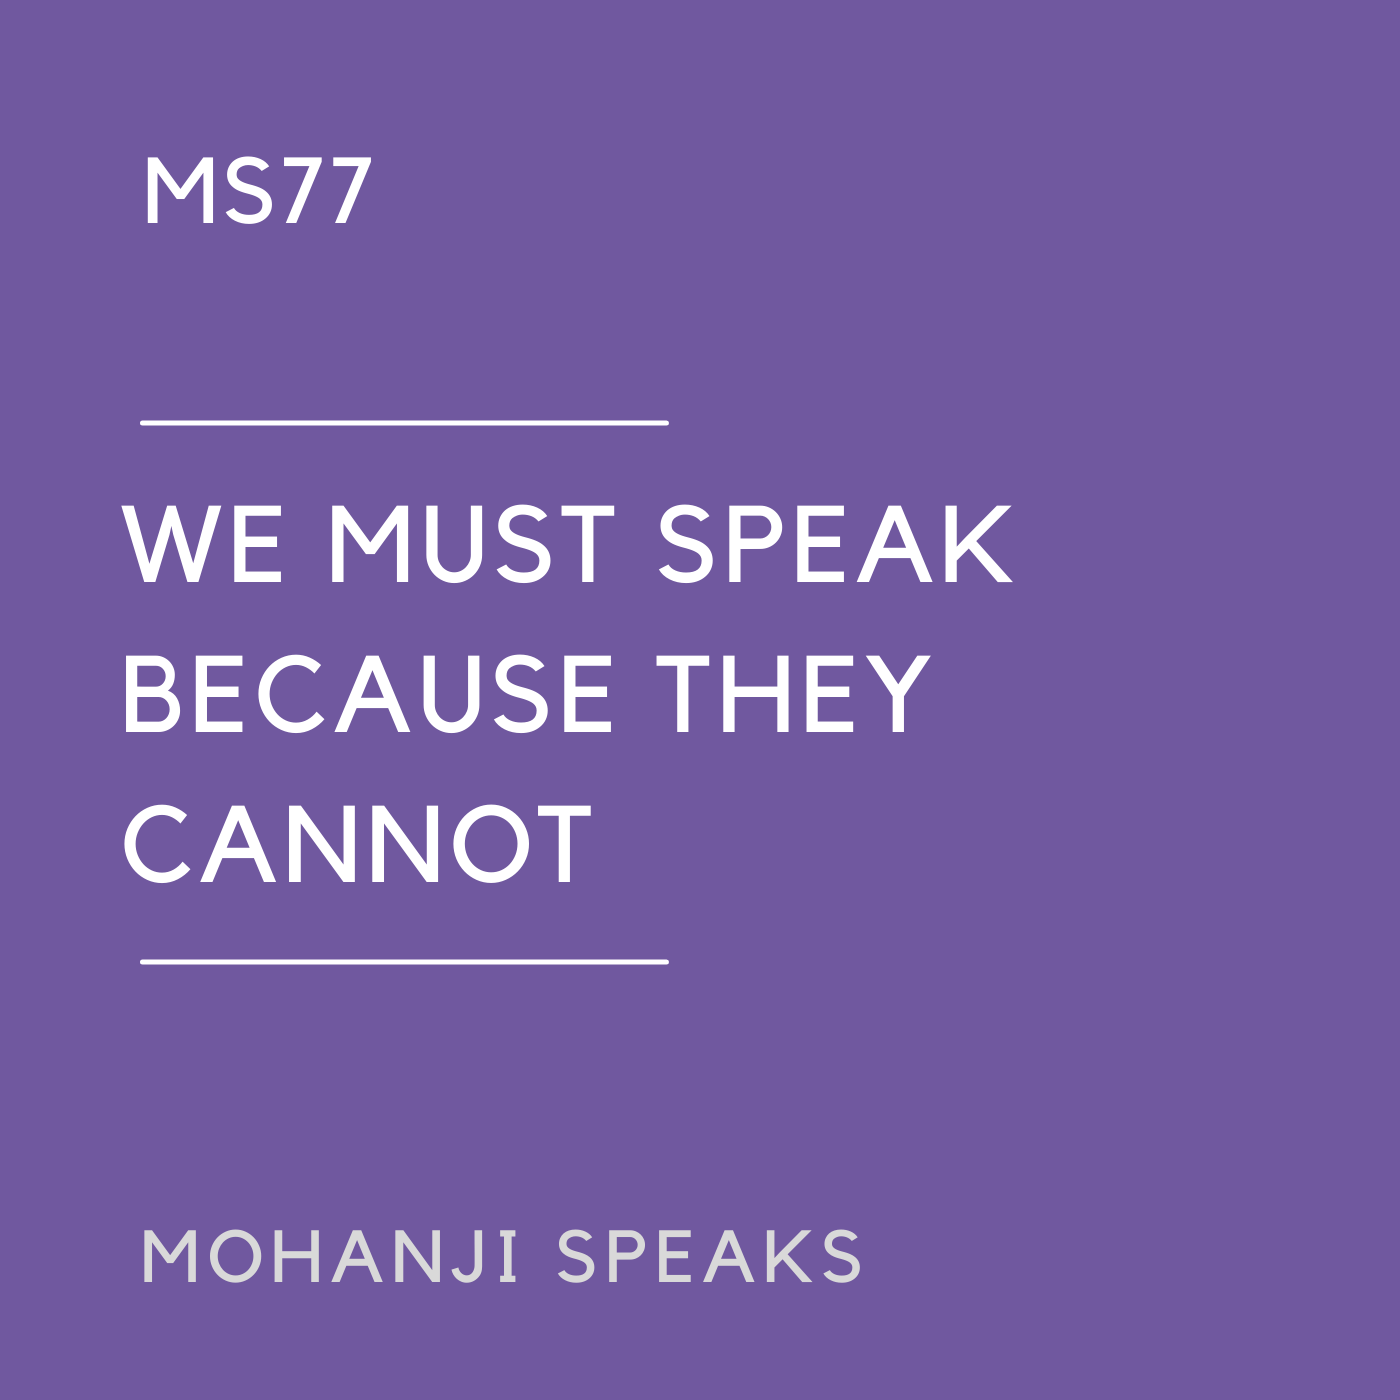 MS77 - We must speak because they cannot